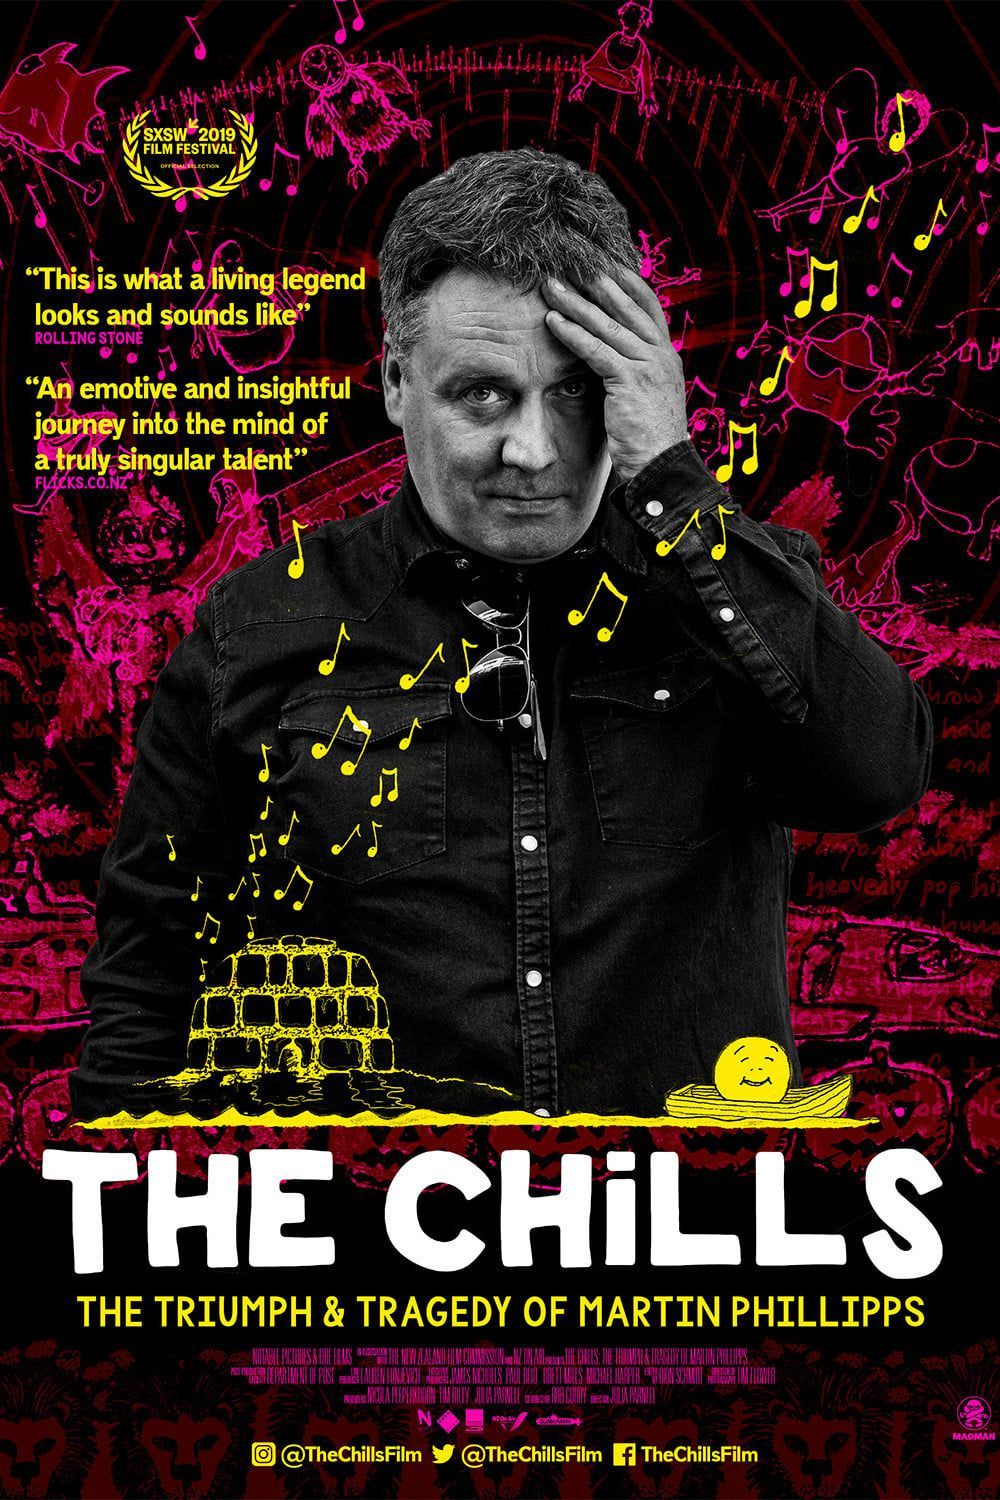 The Chills The Triumph And Tragedy Of Martin Phillipps 2019 Streaming Ita Cb01 Film Completo Italiano Altadefinizione Avengers Film Films Complets Film A Voir